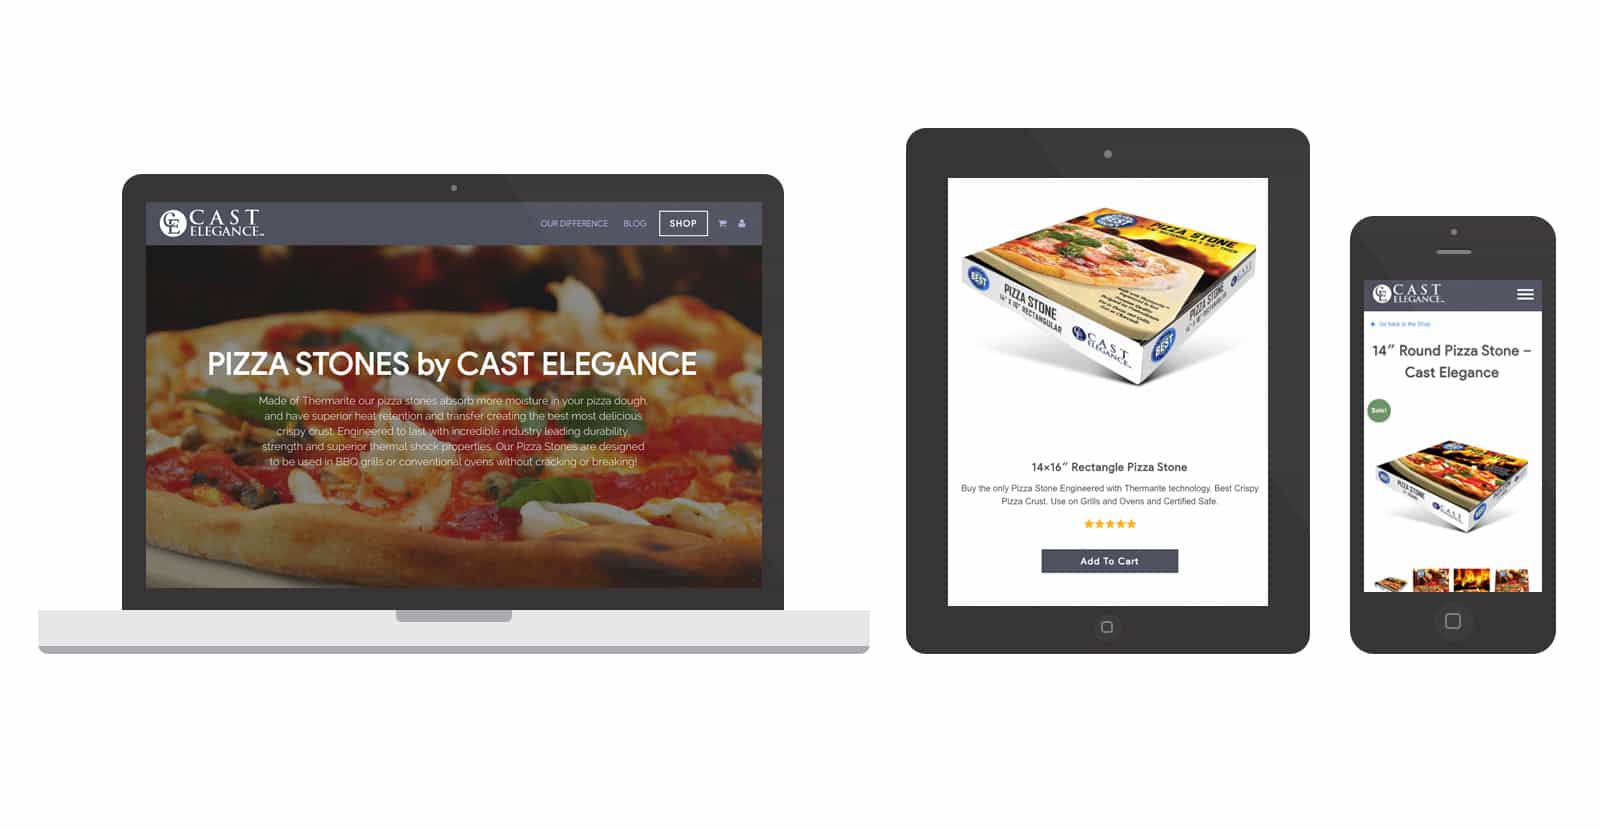 Cast Elegance Pizza Stone SEO and Website Design by Spark Logix